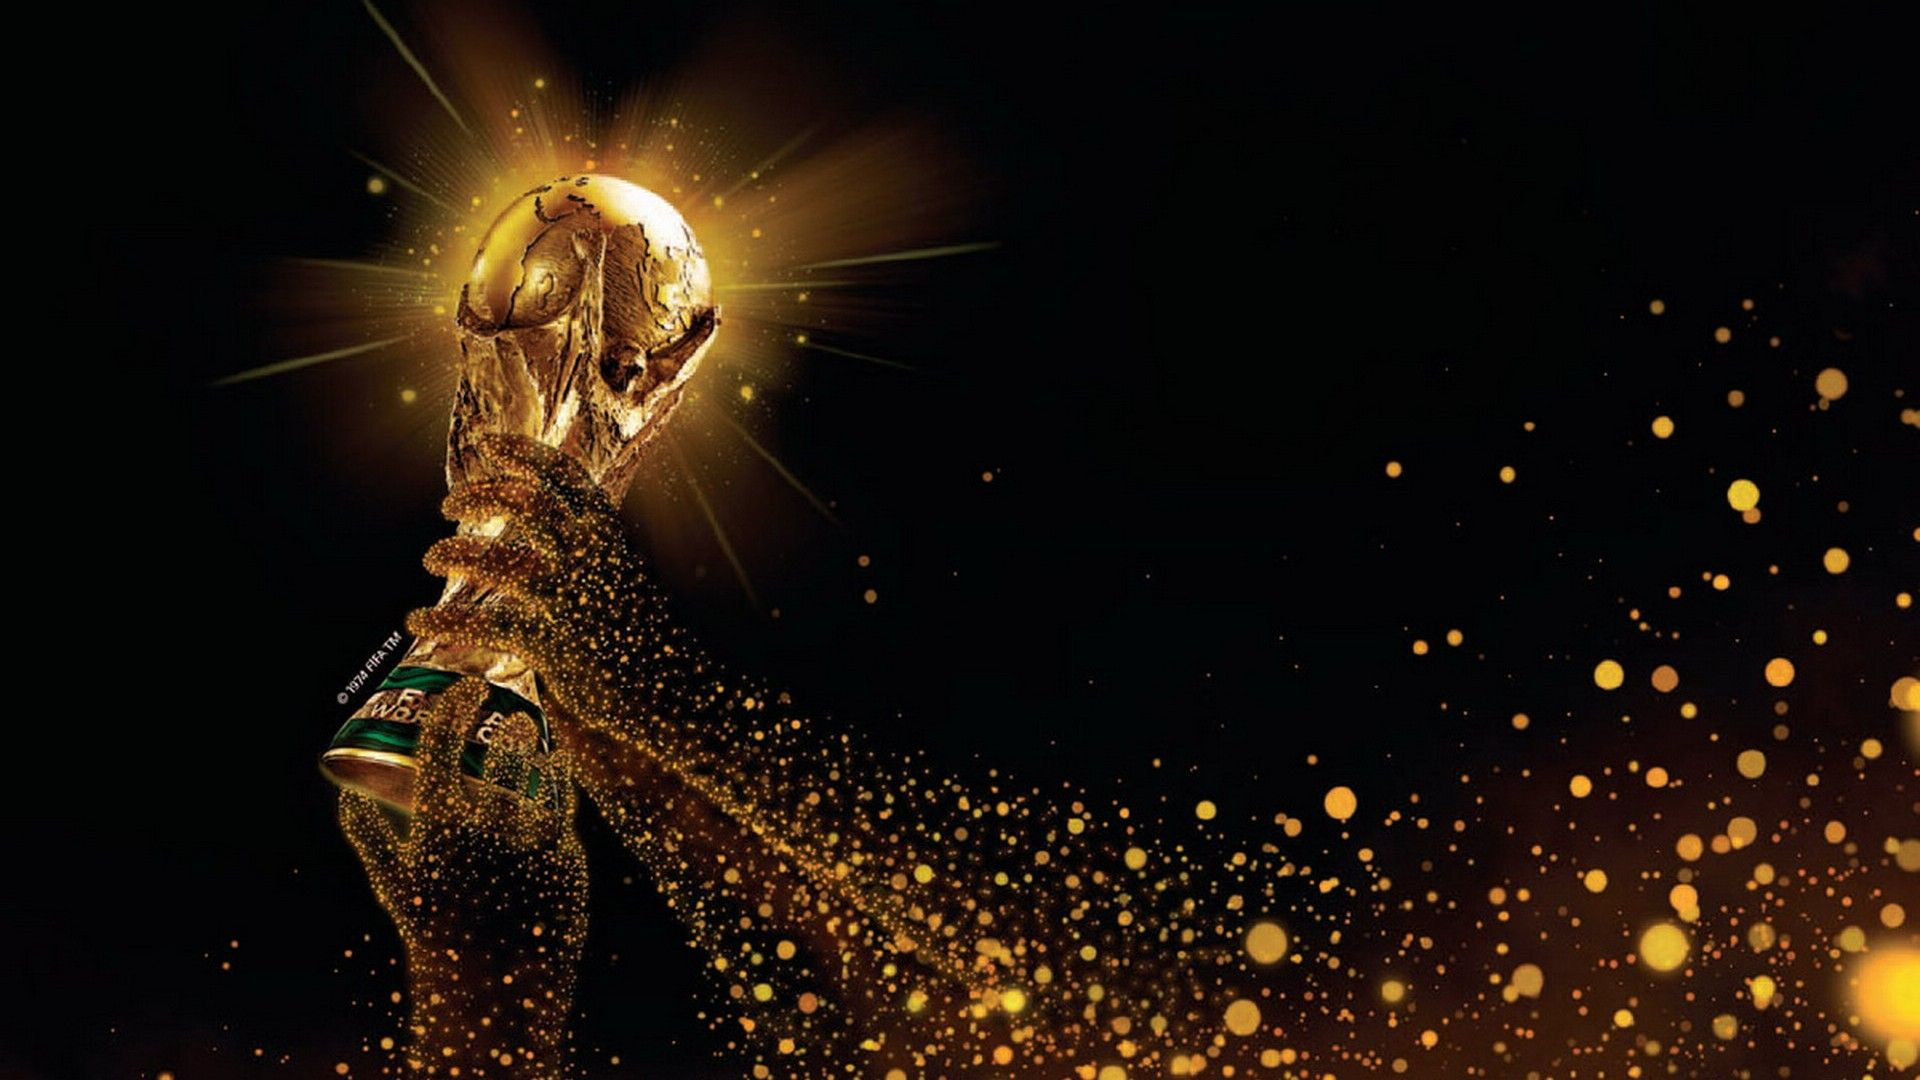 Download FIFA World Cup 2014 HD Wallpapers